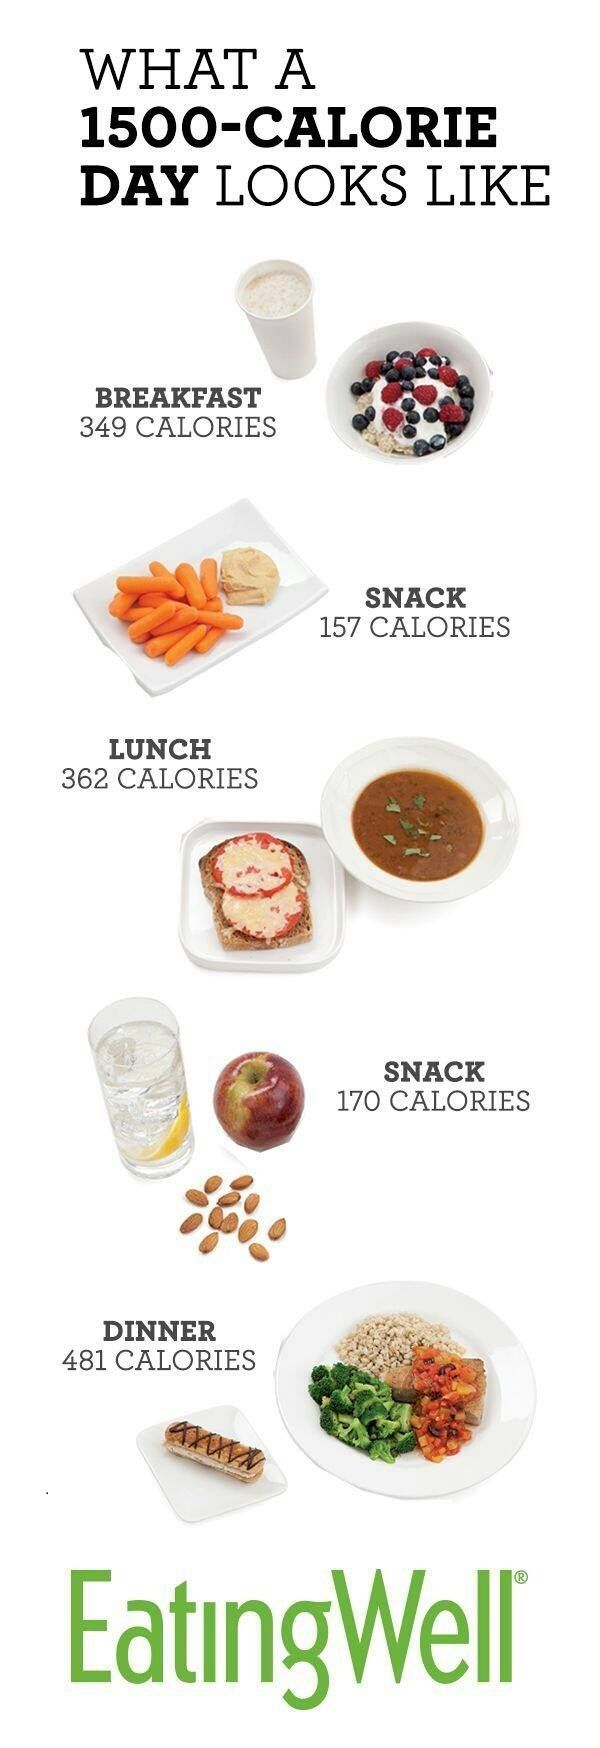 Counting calories may not be for everyone. But with the new year — and all its resolutions — upon us, we thought you might want to check out what 1500 calories looks like. Eating Well breaks down the day into breakfast, lunch and dinner, and includes a mid-morning and mid-afternoon snack. What do you think? Is that enough to keep you full throughout the day? Not necessarily. The U.S. Department of Health and Human Services says that 1,500-calorie diets are ideal for women weighing more than…